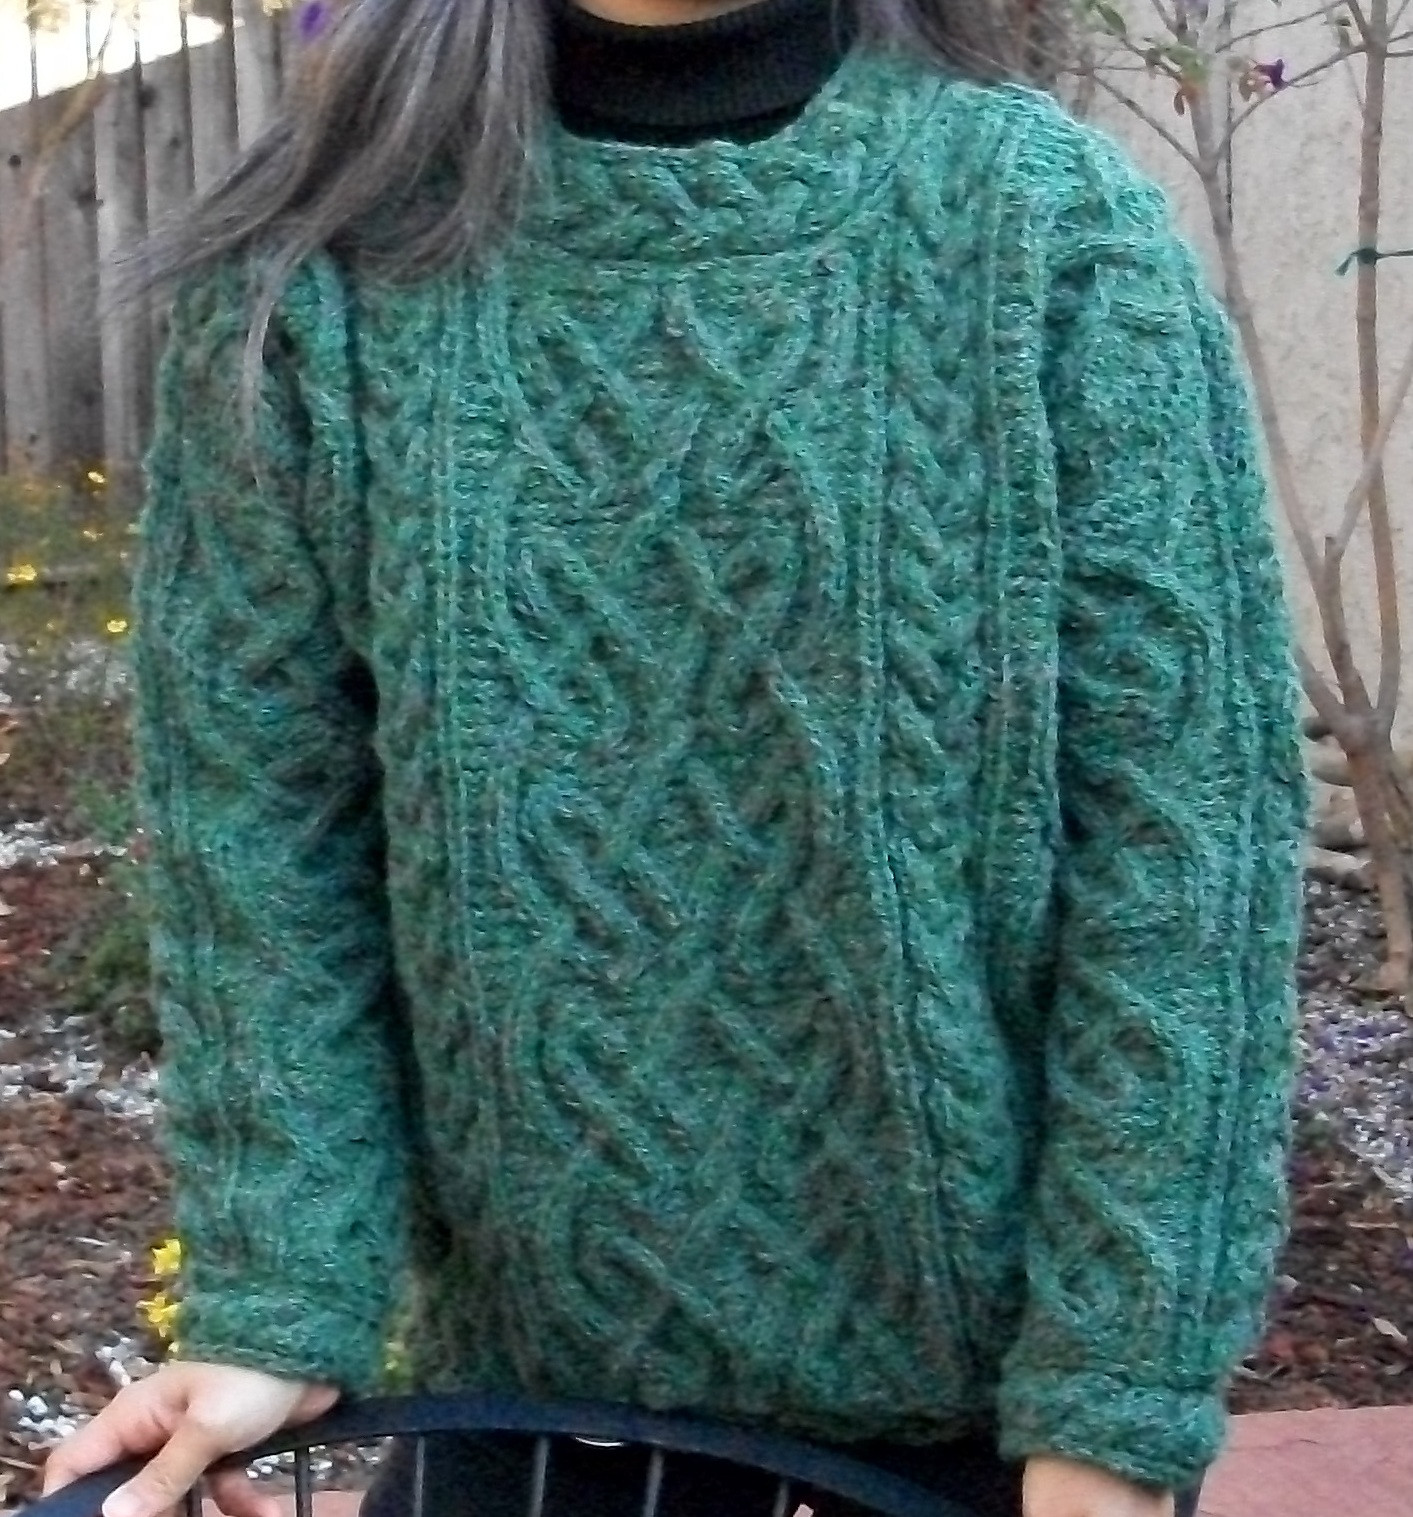 Aran Knitting Patterns New Bits and Pieces December 2011 Of Top 41 Models Aran Knitting Patterns